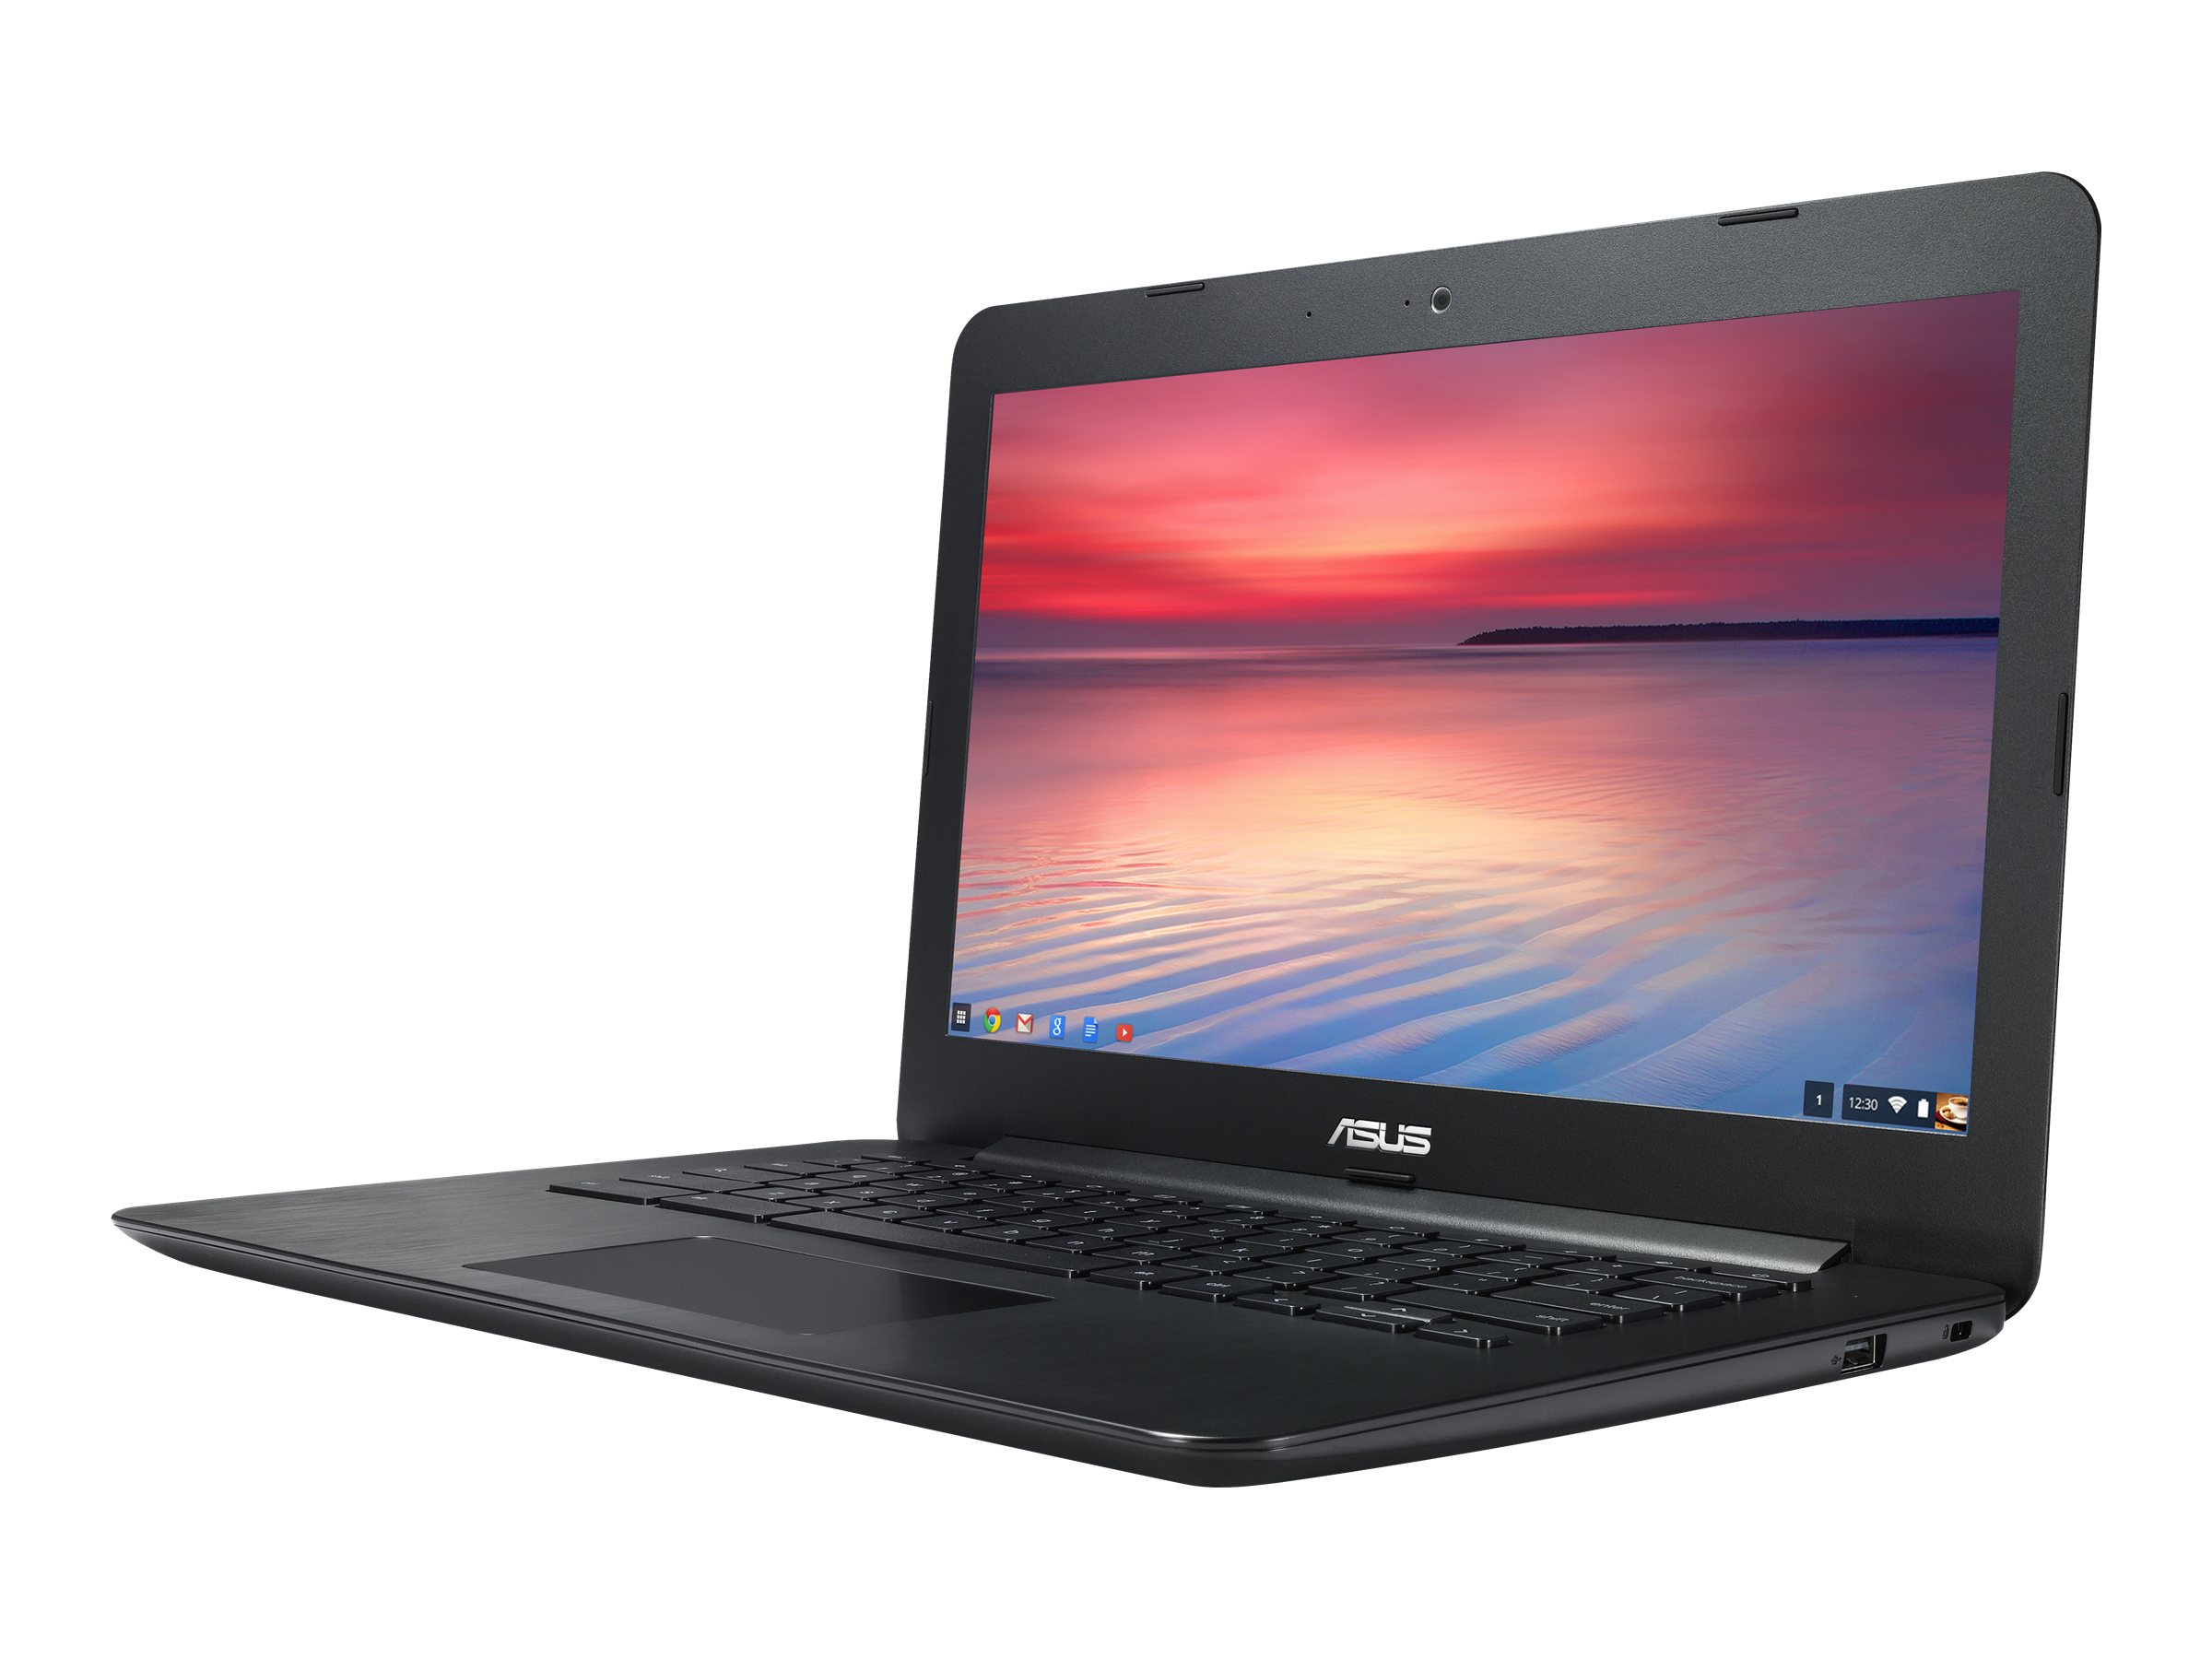 Asus Chromebook DC 4GB 16GB Flash 13.3 ChromeOS, 90NB05W1-M00590, 21812796, Notebooks